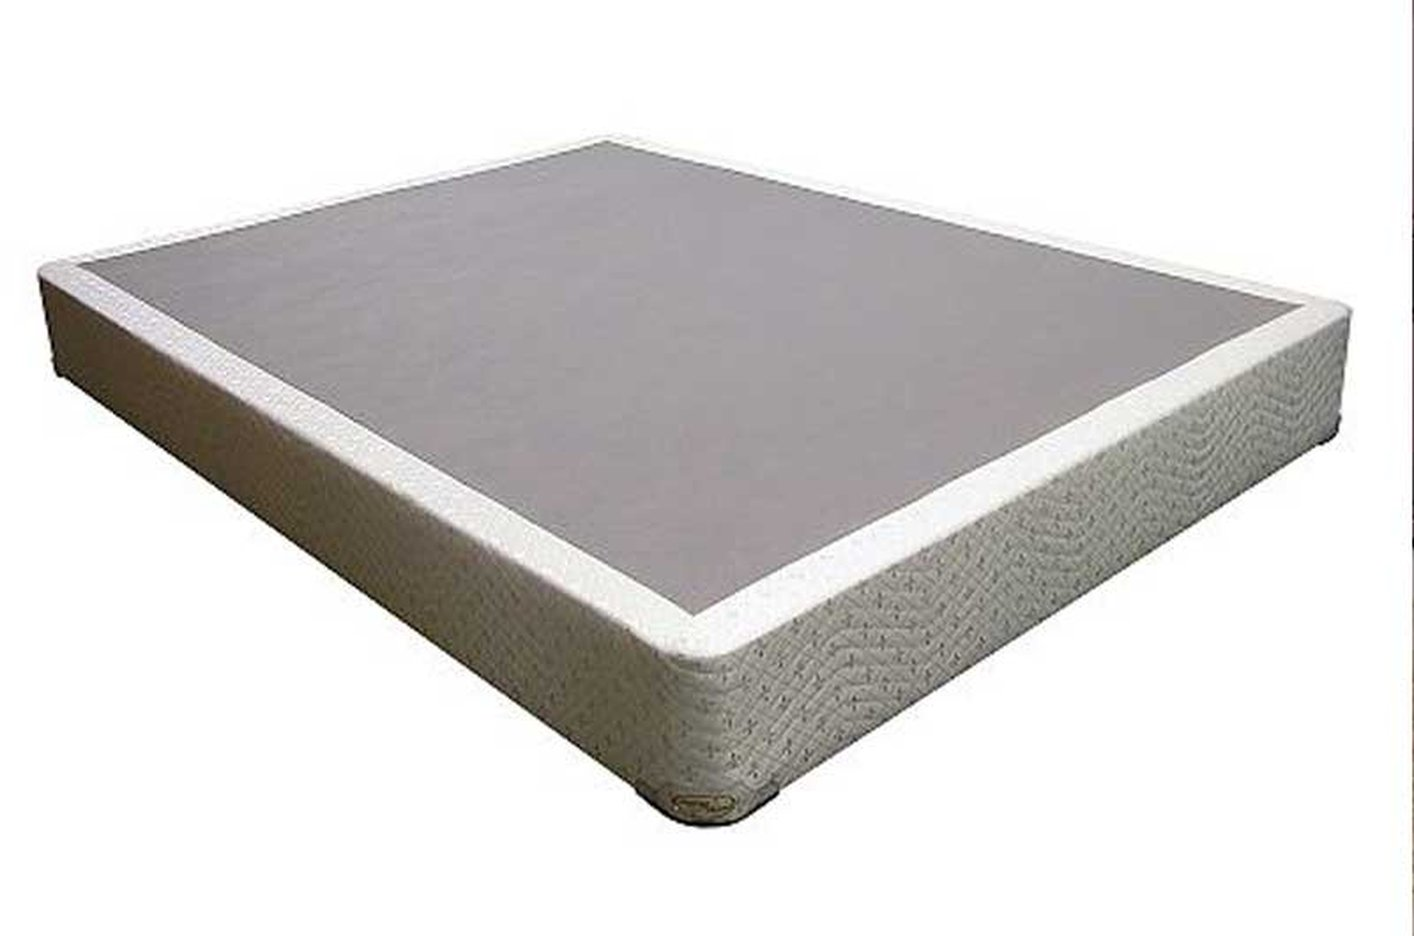 Beautyrest Recharge Hybrid Blakeford Firm Mattress - California King For Sale Online